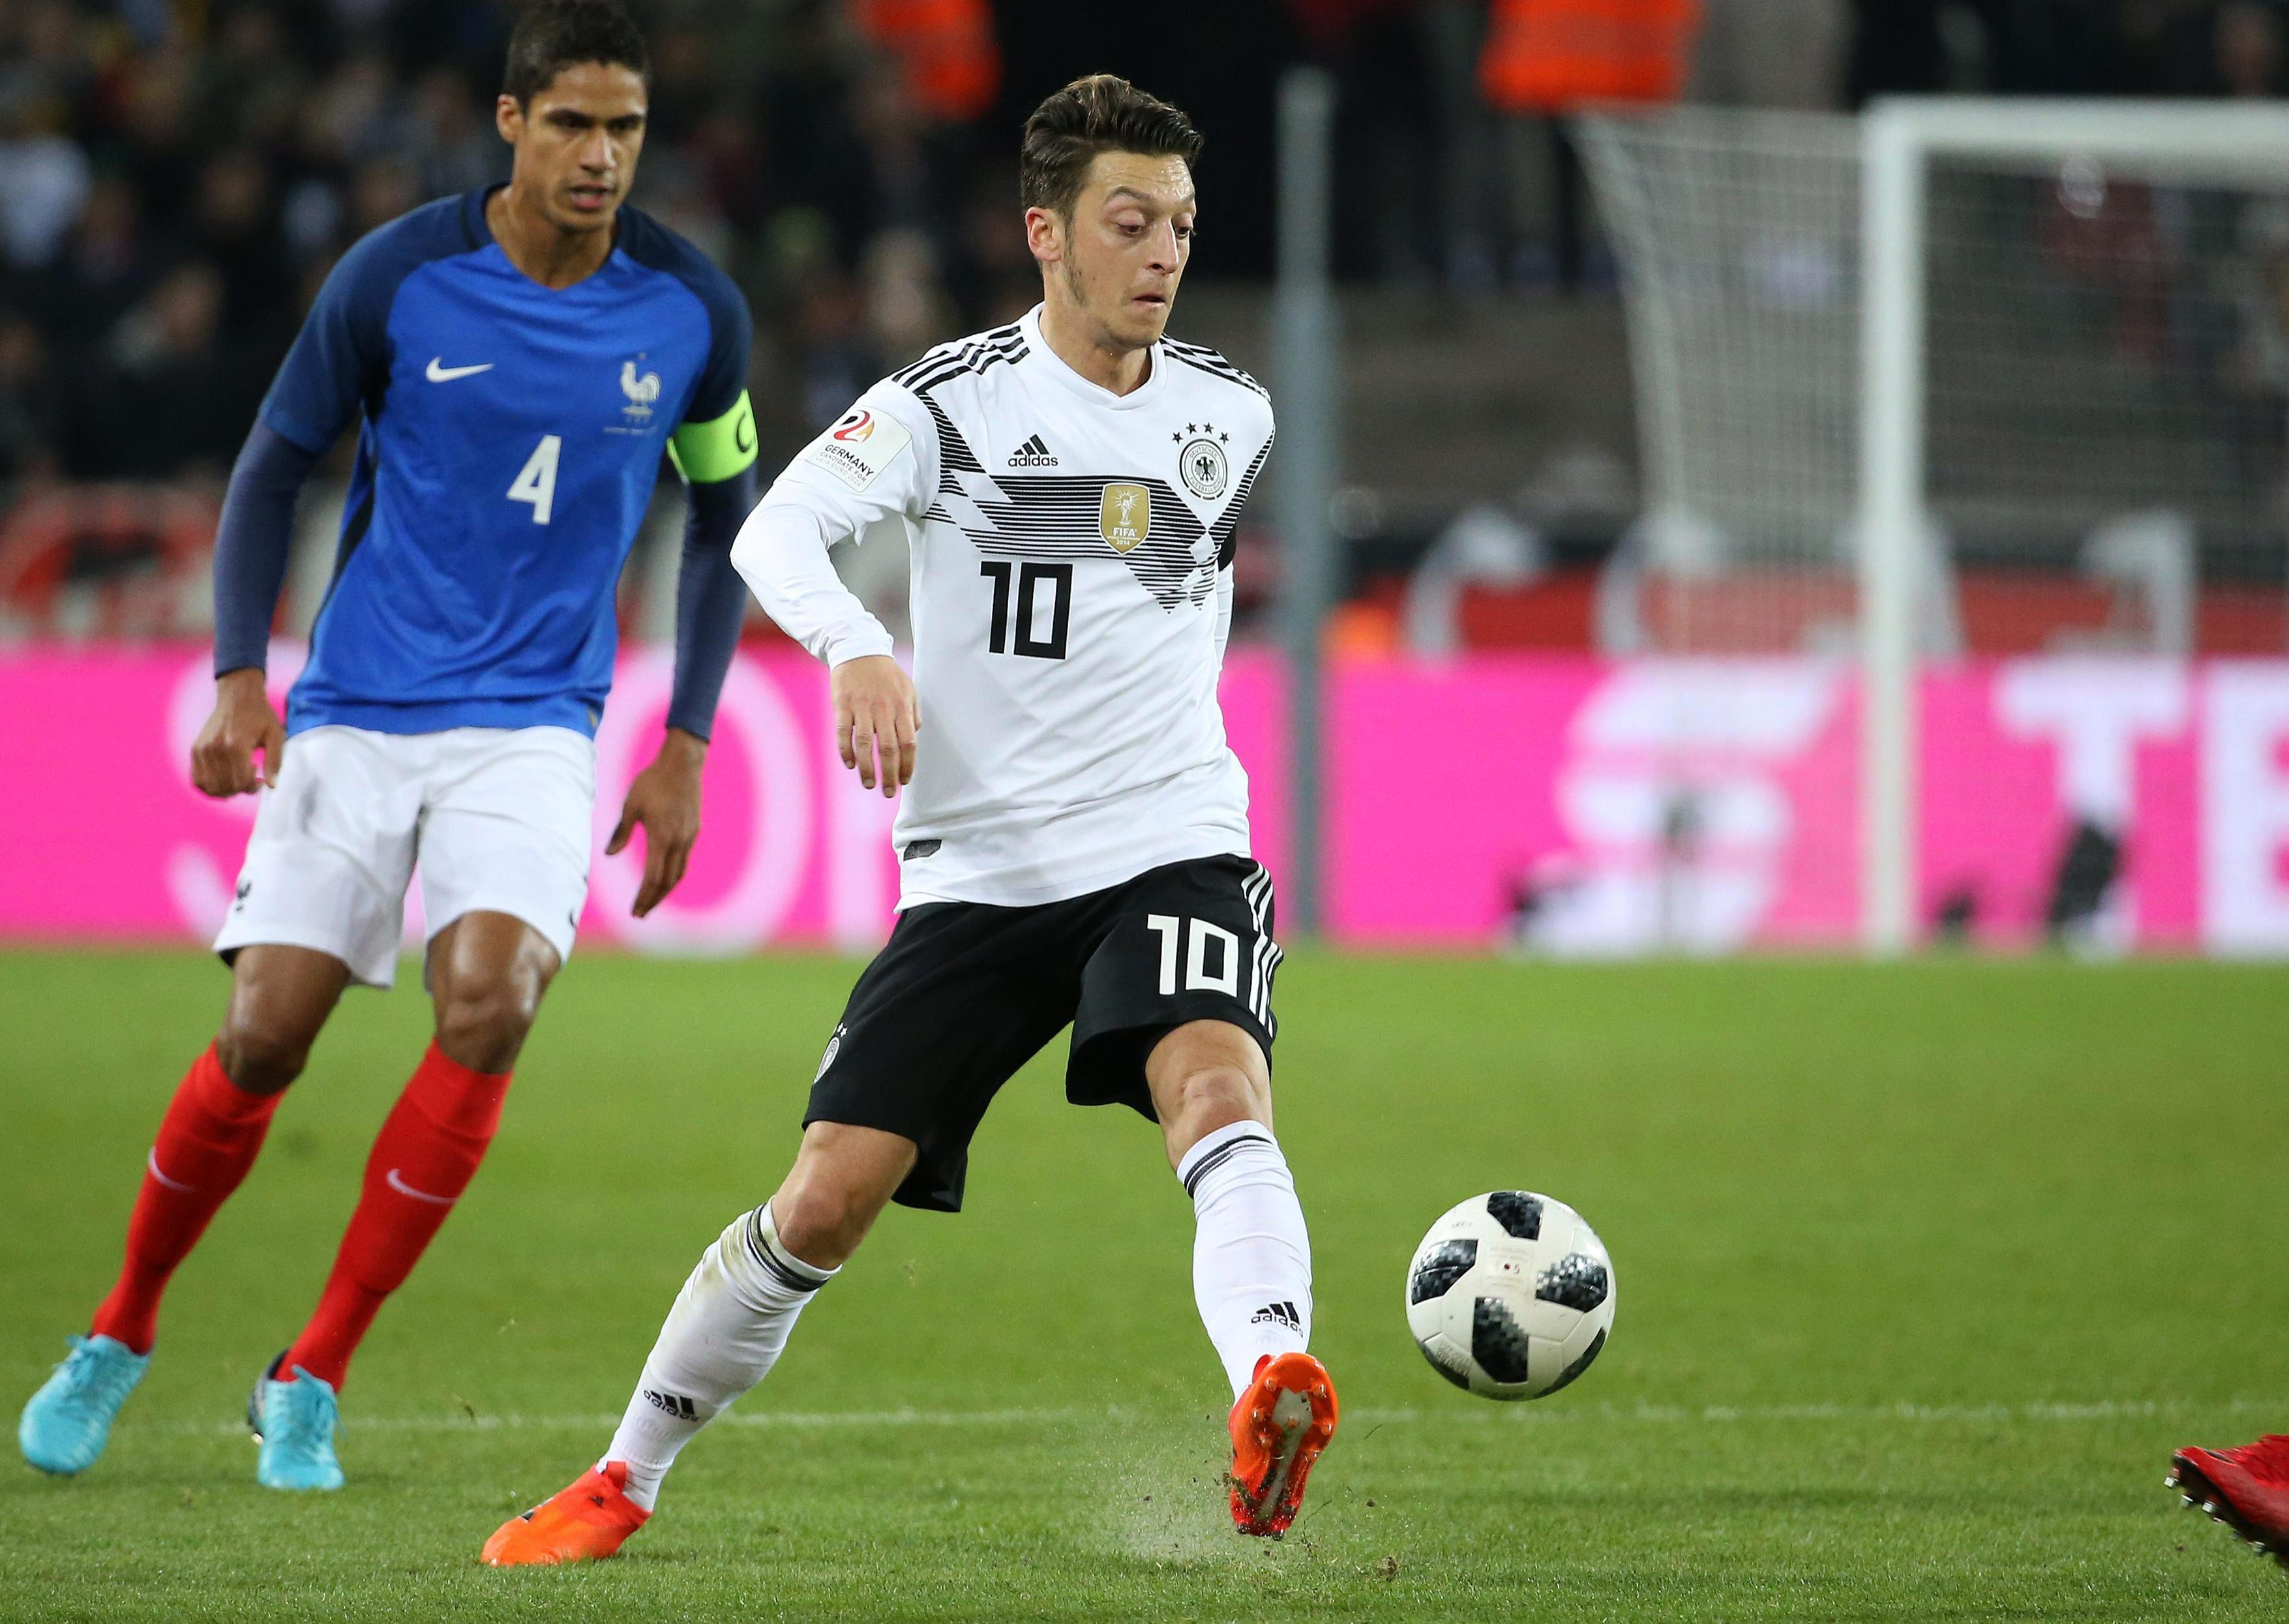 Ozil has been viewed as Germany's best player for years